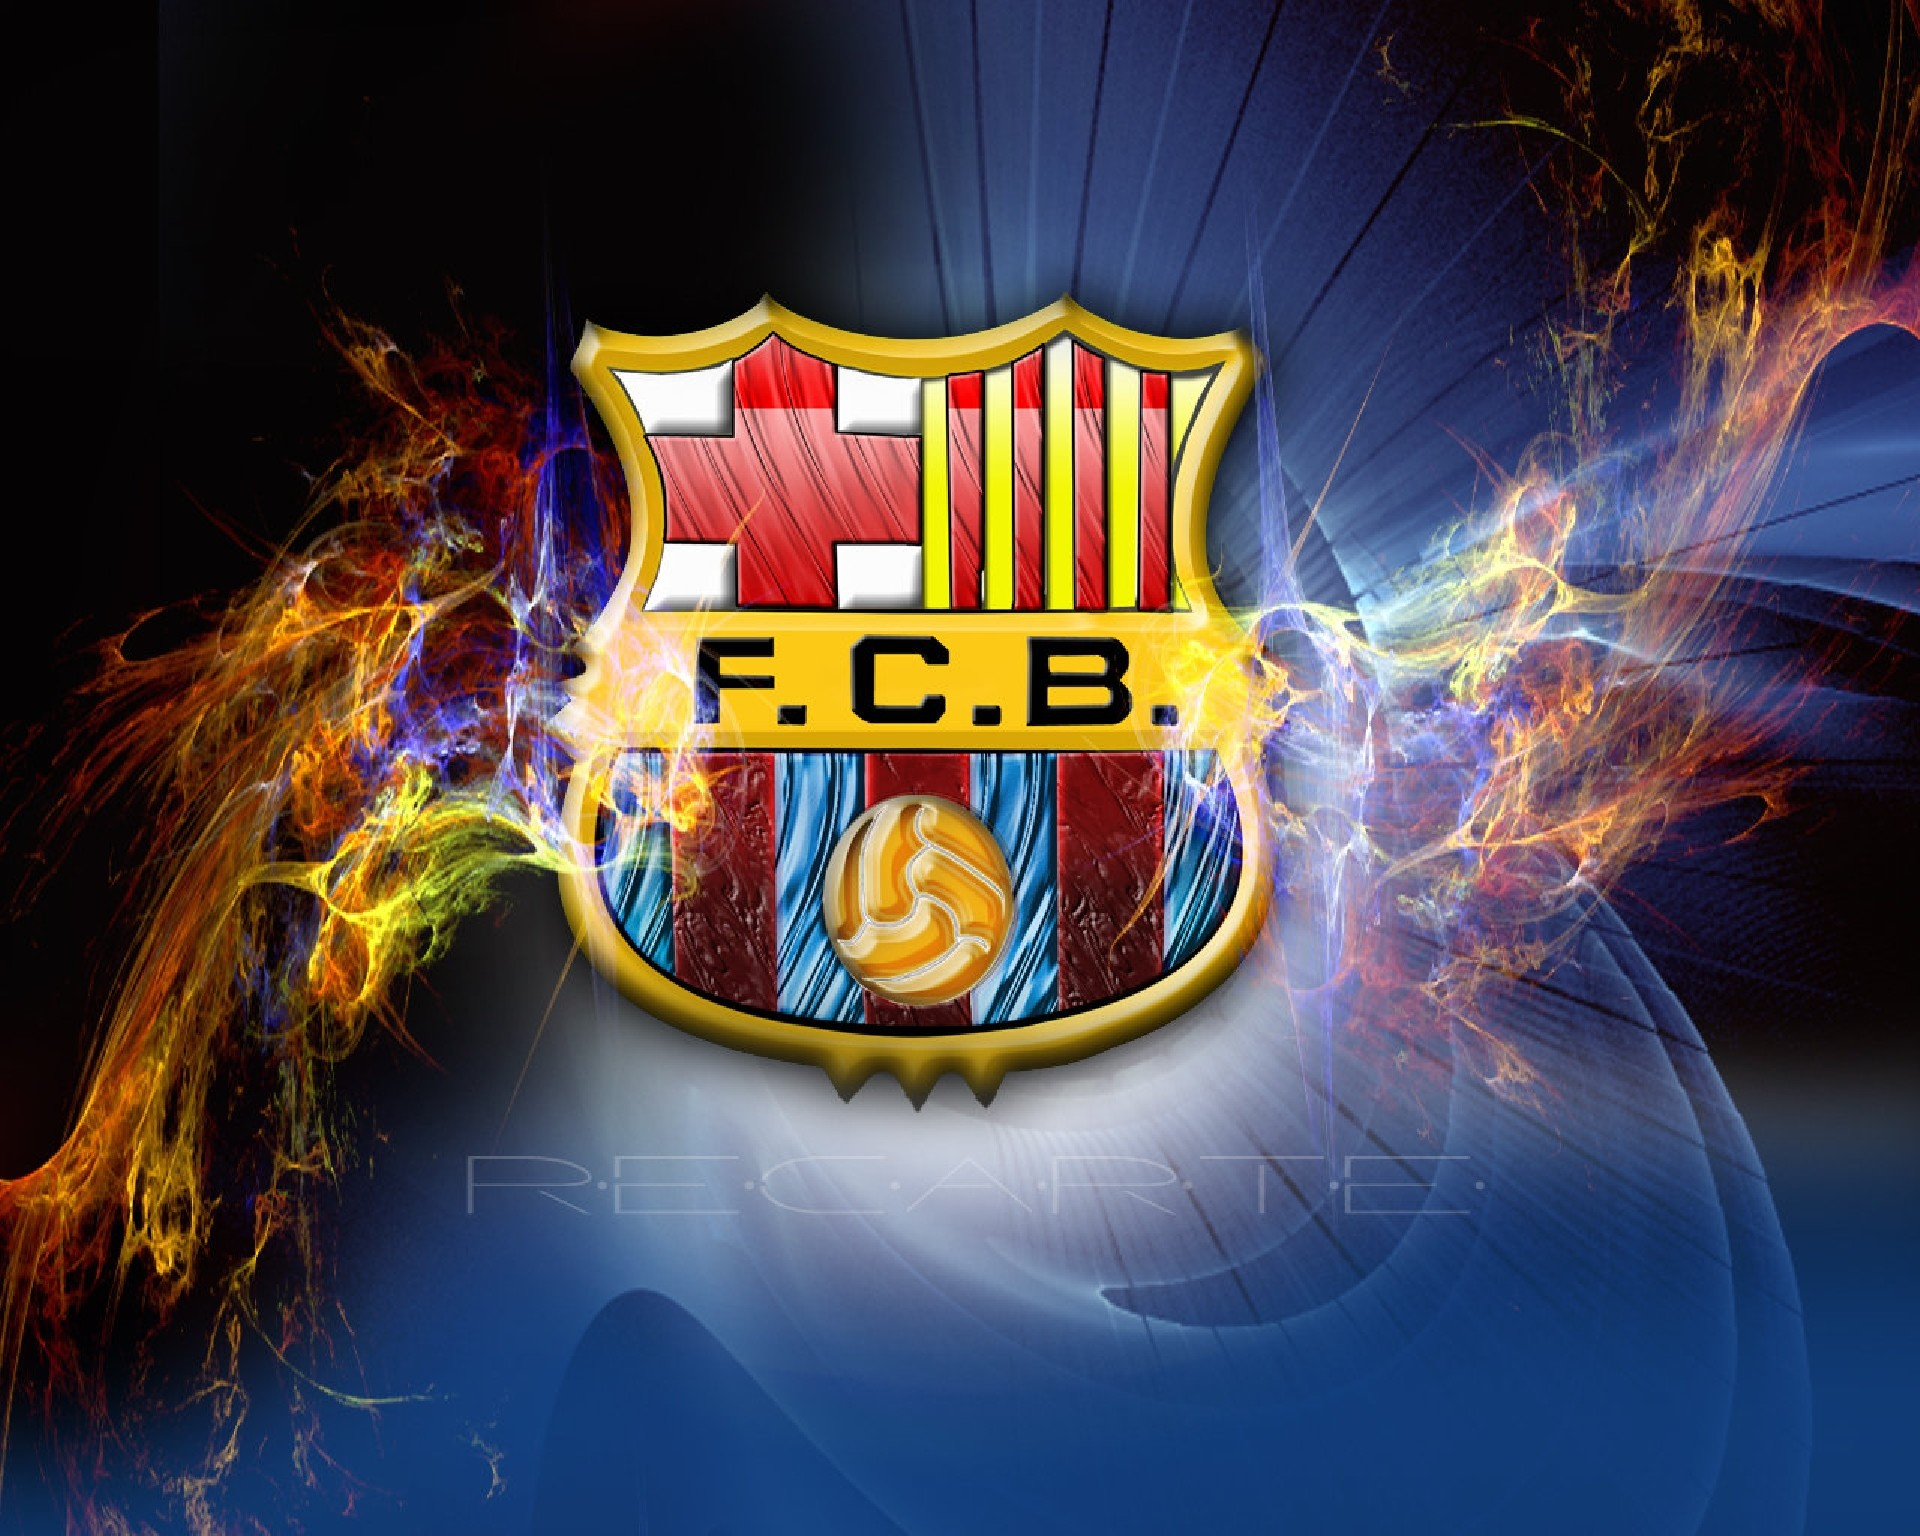 HD Wallpaper and background photos of FC Barcelona Logo Wallpaper for fans  of FC Barcelona images.